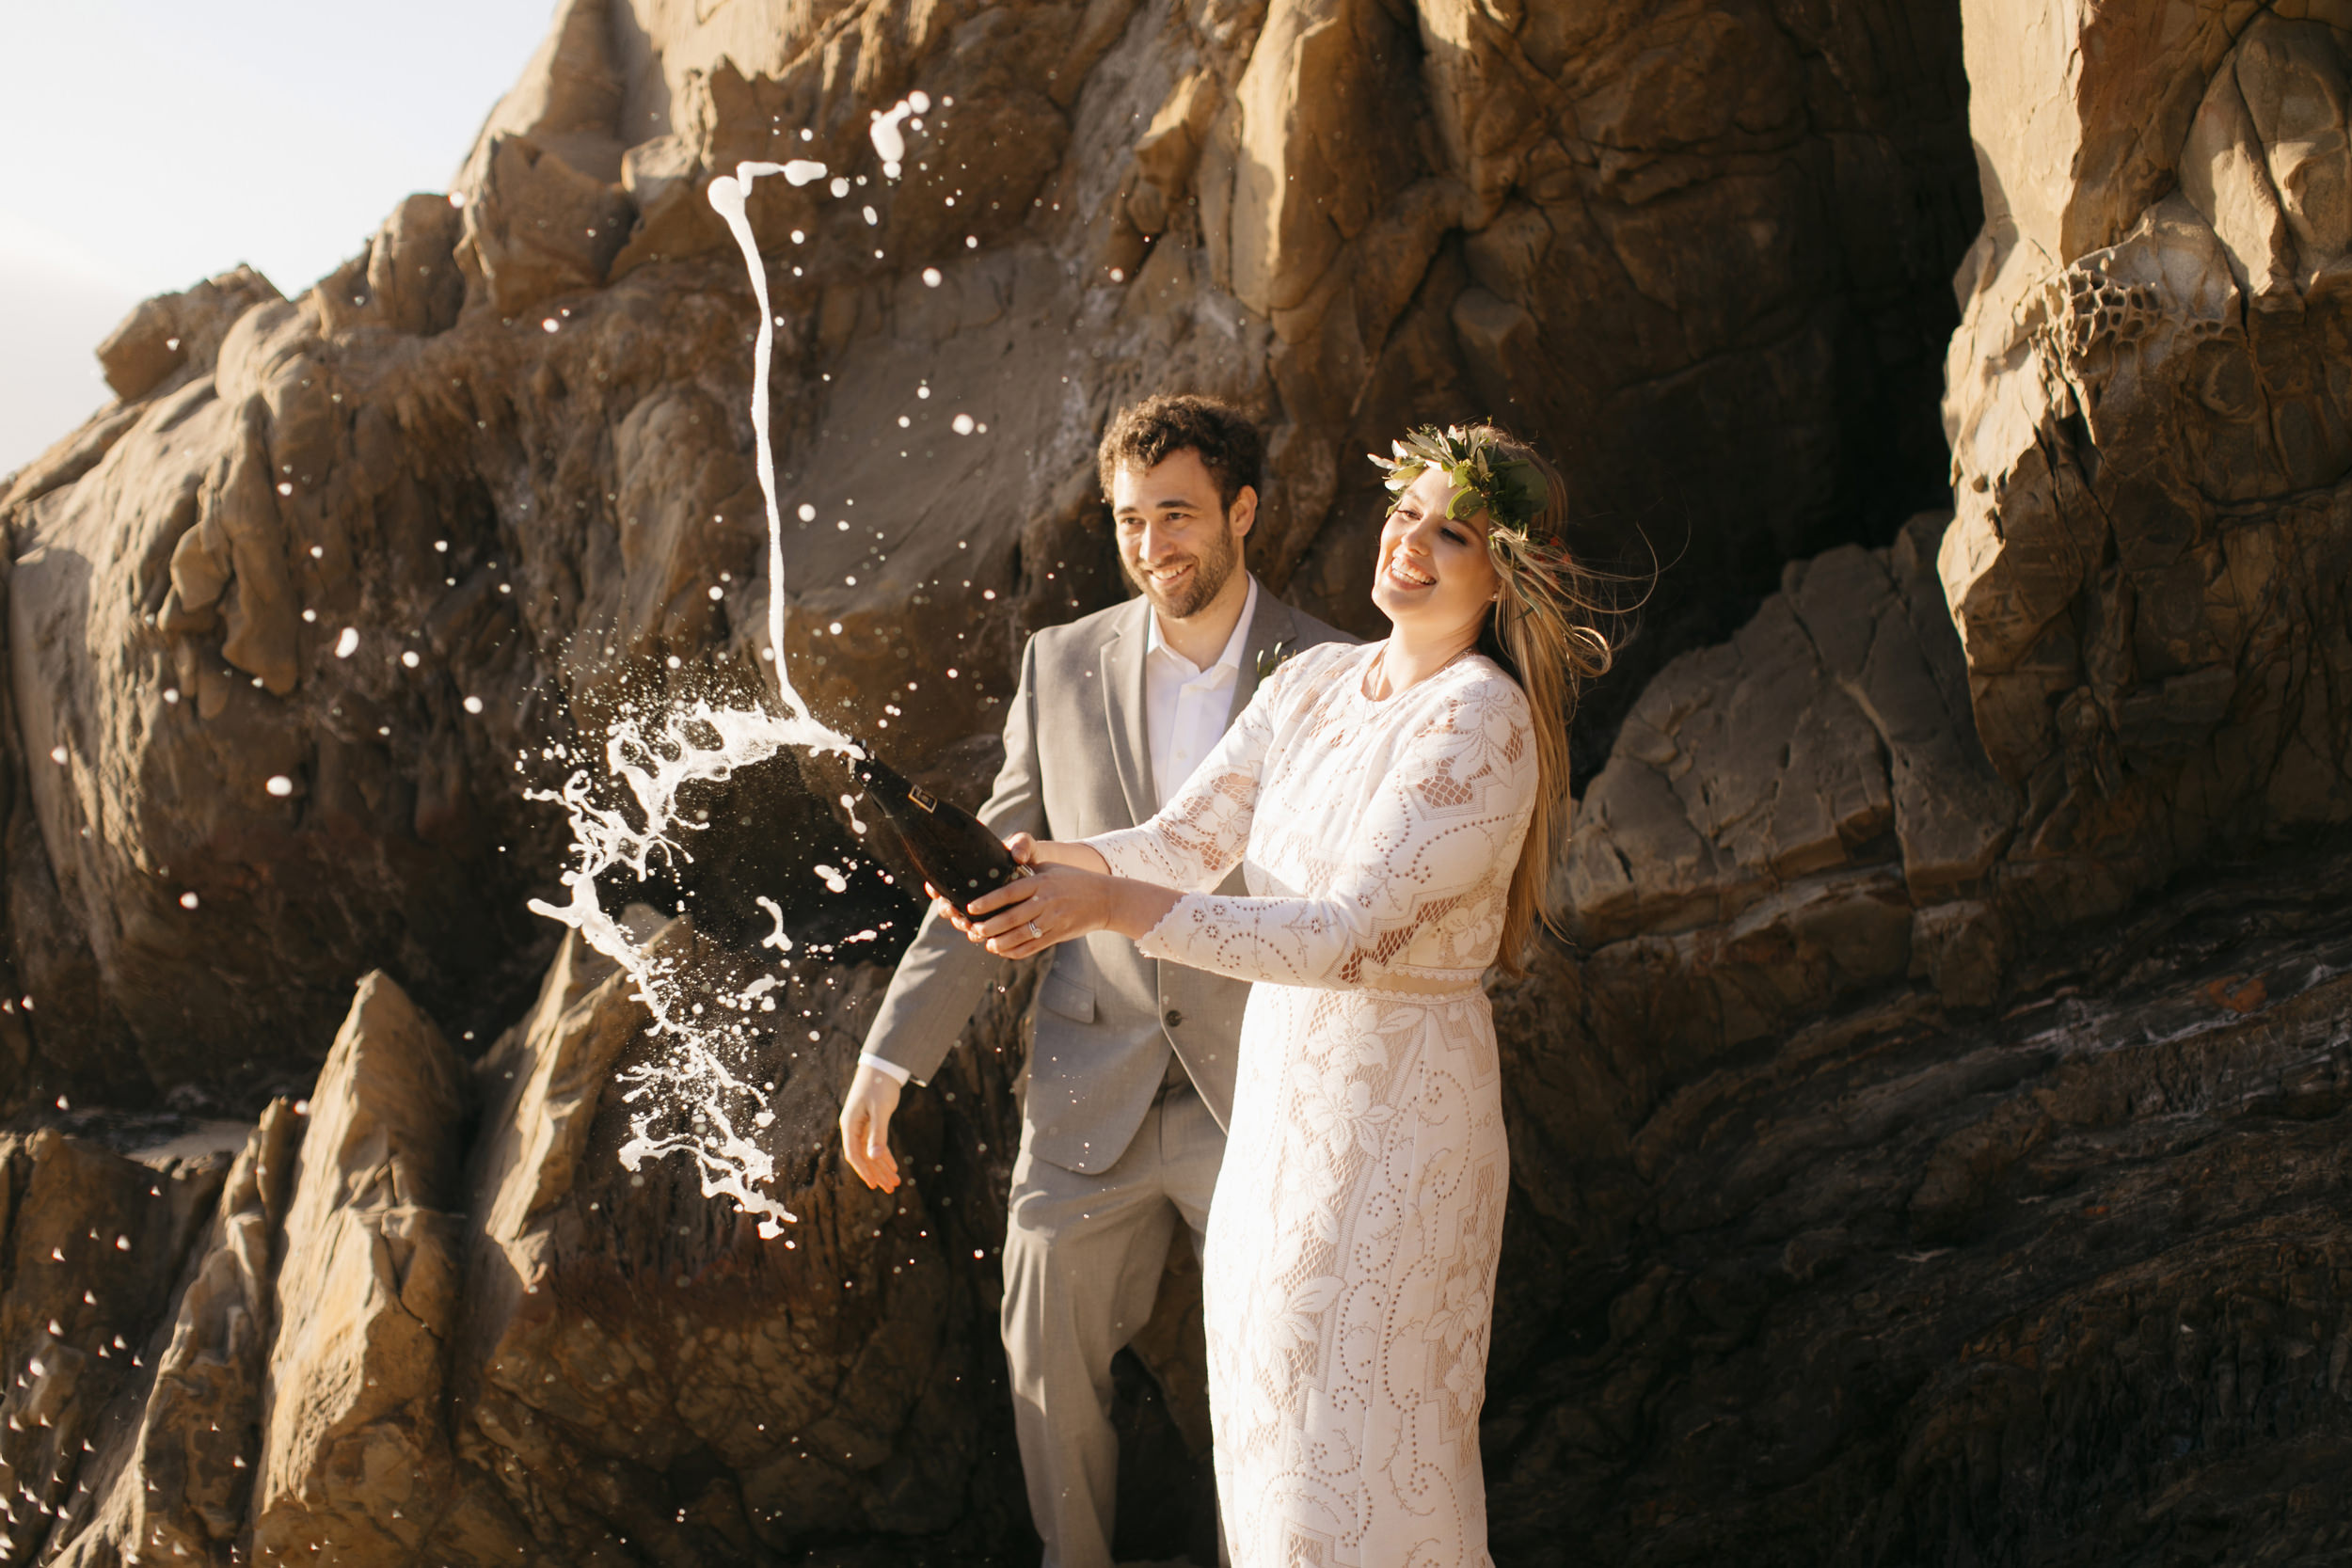 big-sur-elopement-california-adventure-wedding-photographer 247.JPG